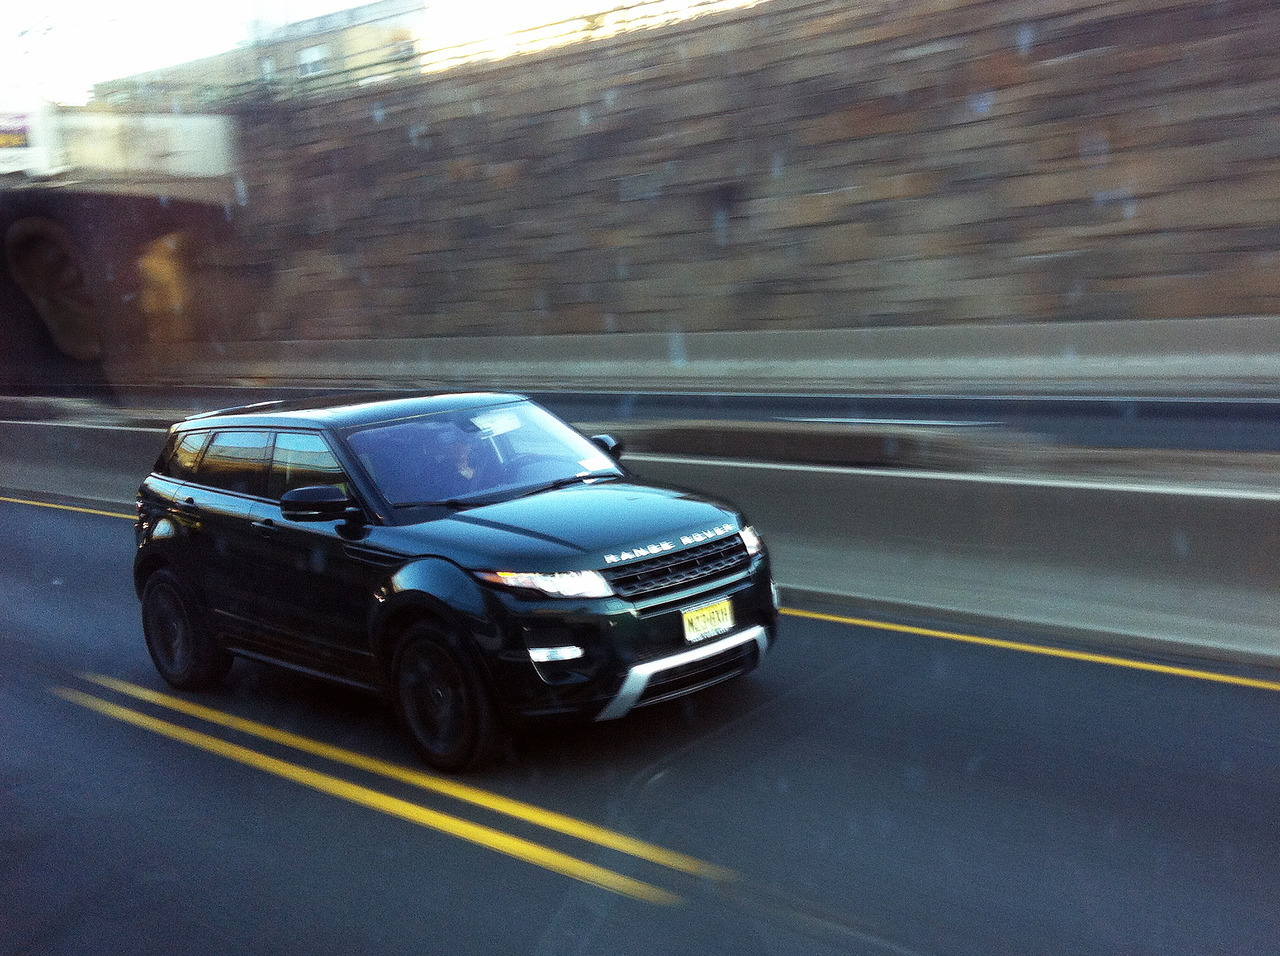 Evoque I spotted from the bus on the way home one day.